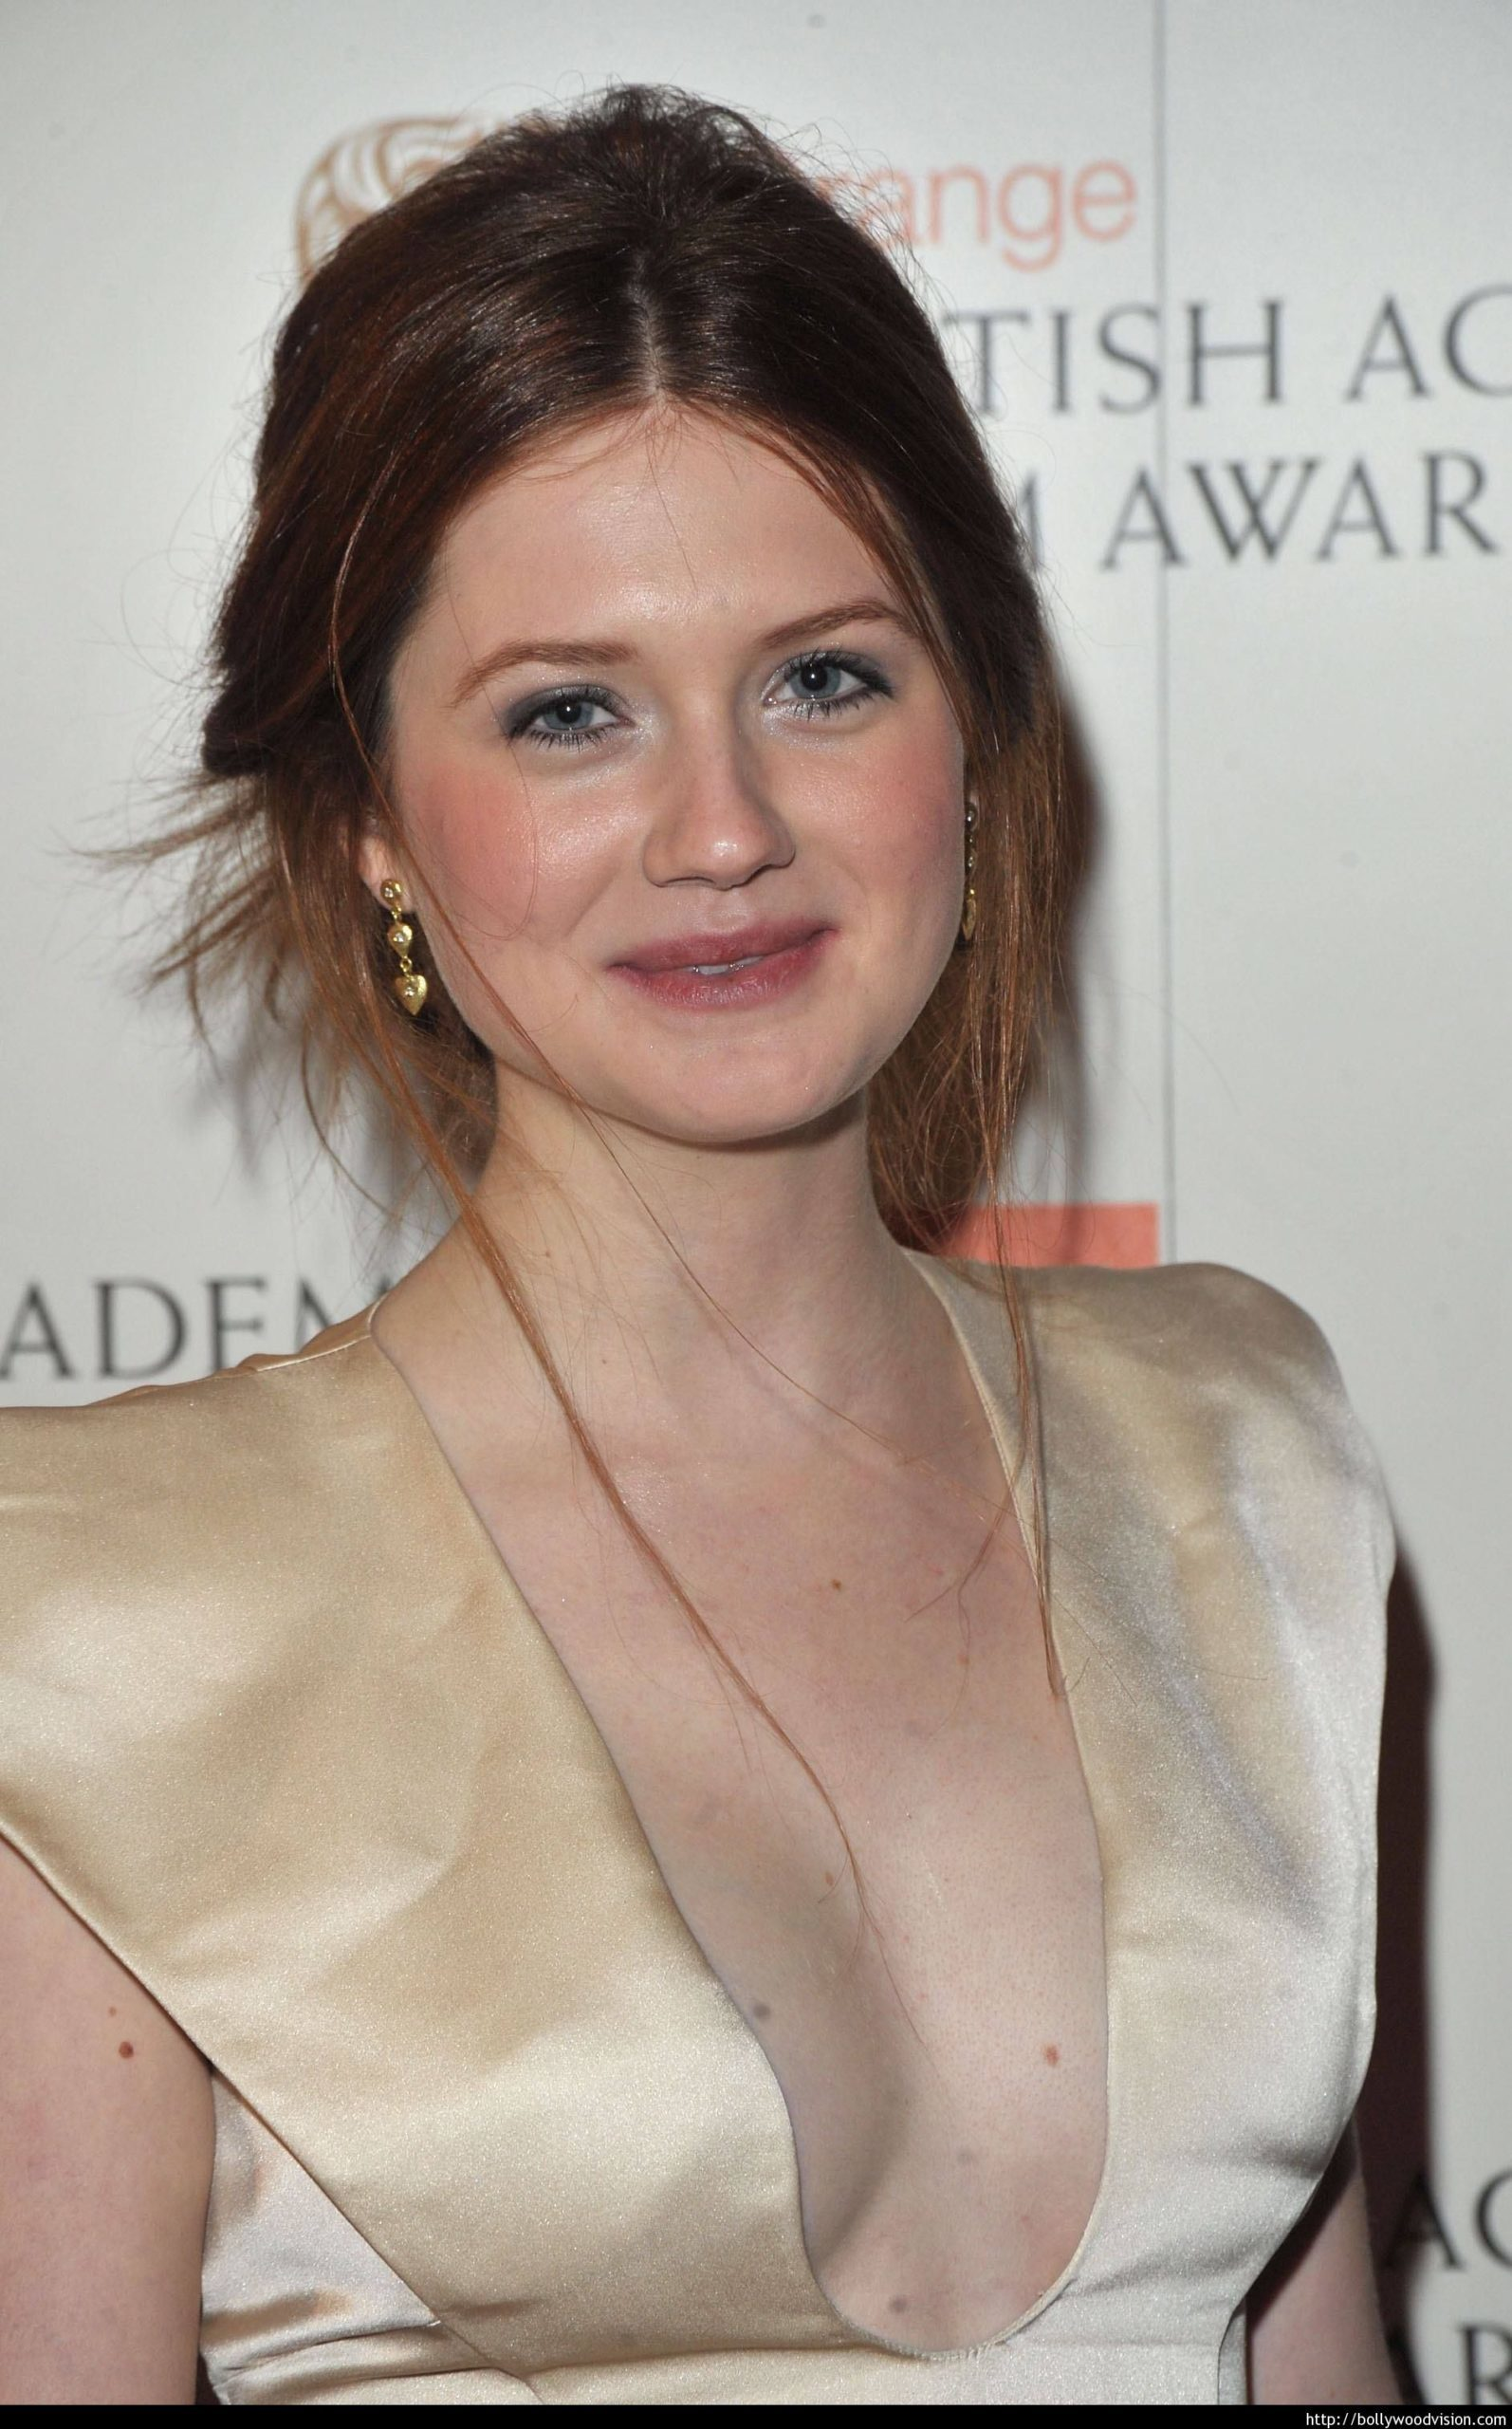 bonnie-wright-height-weight-age-bra-size-affairs-body-stats-bollywoodfox-2